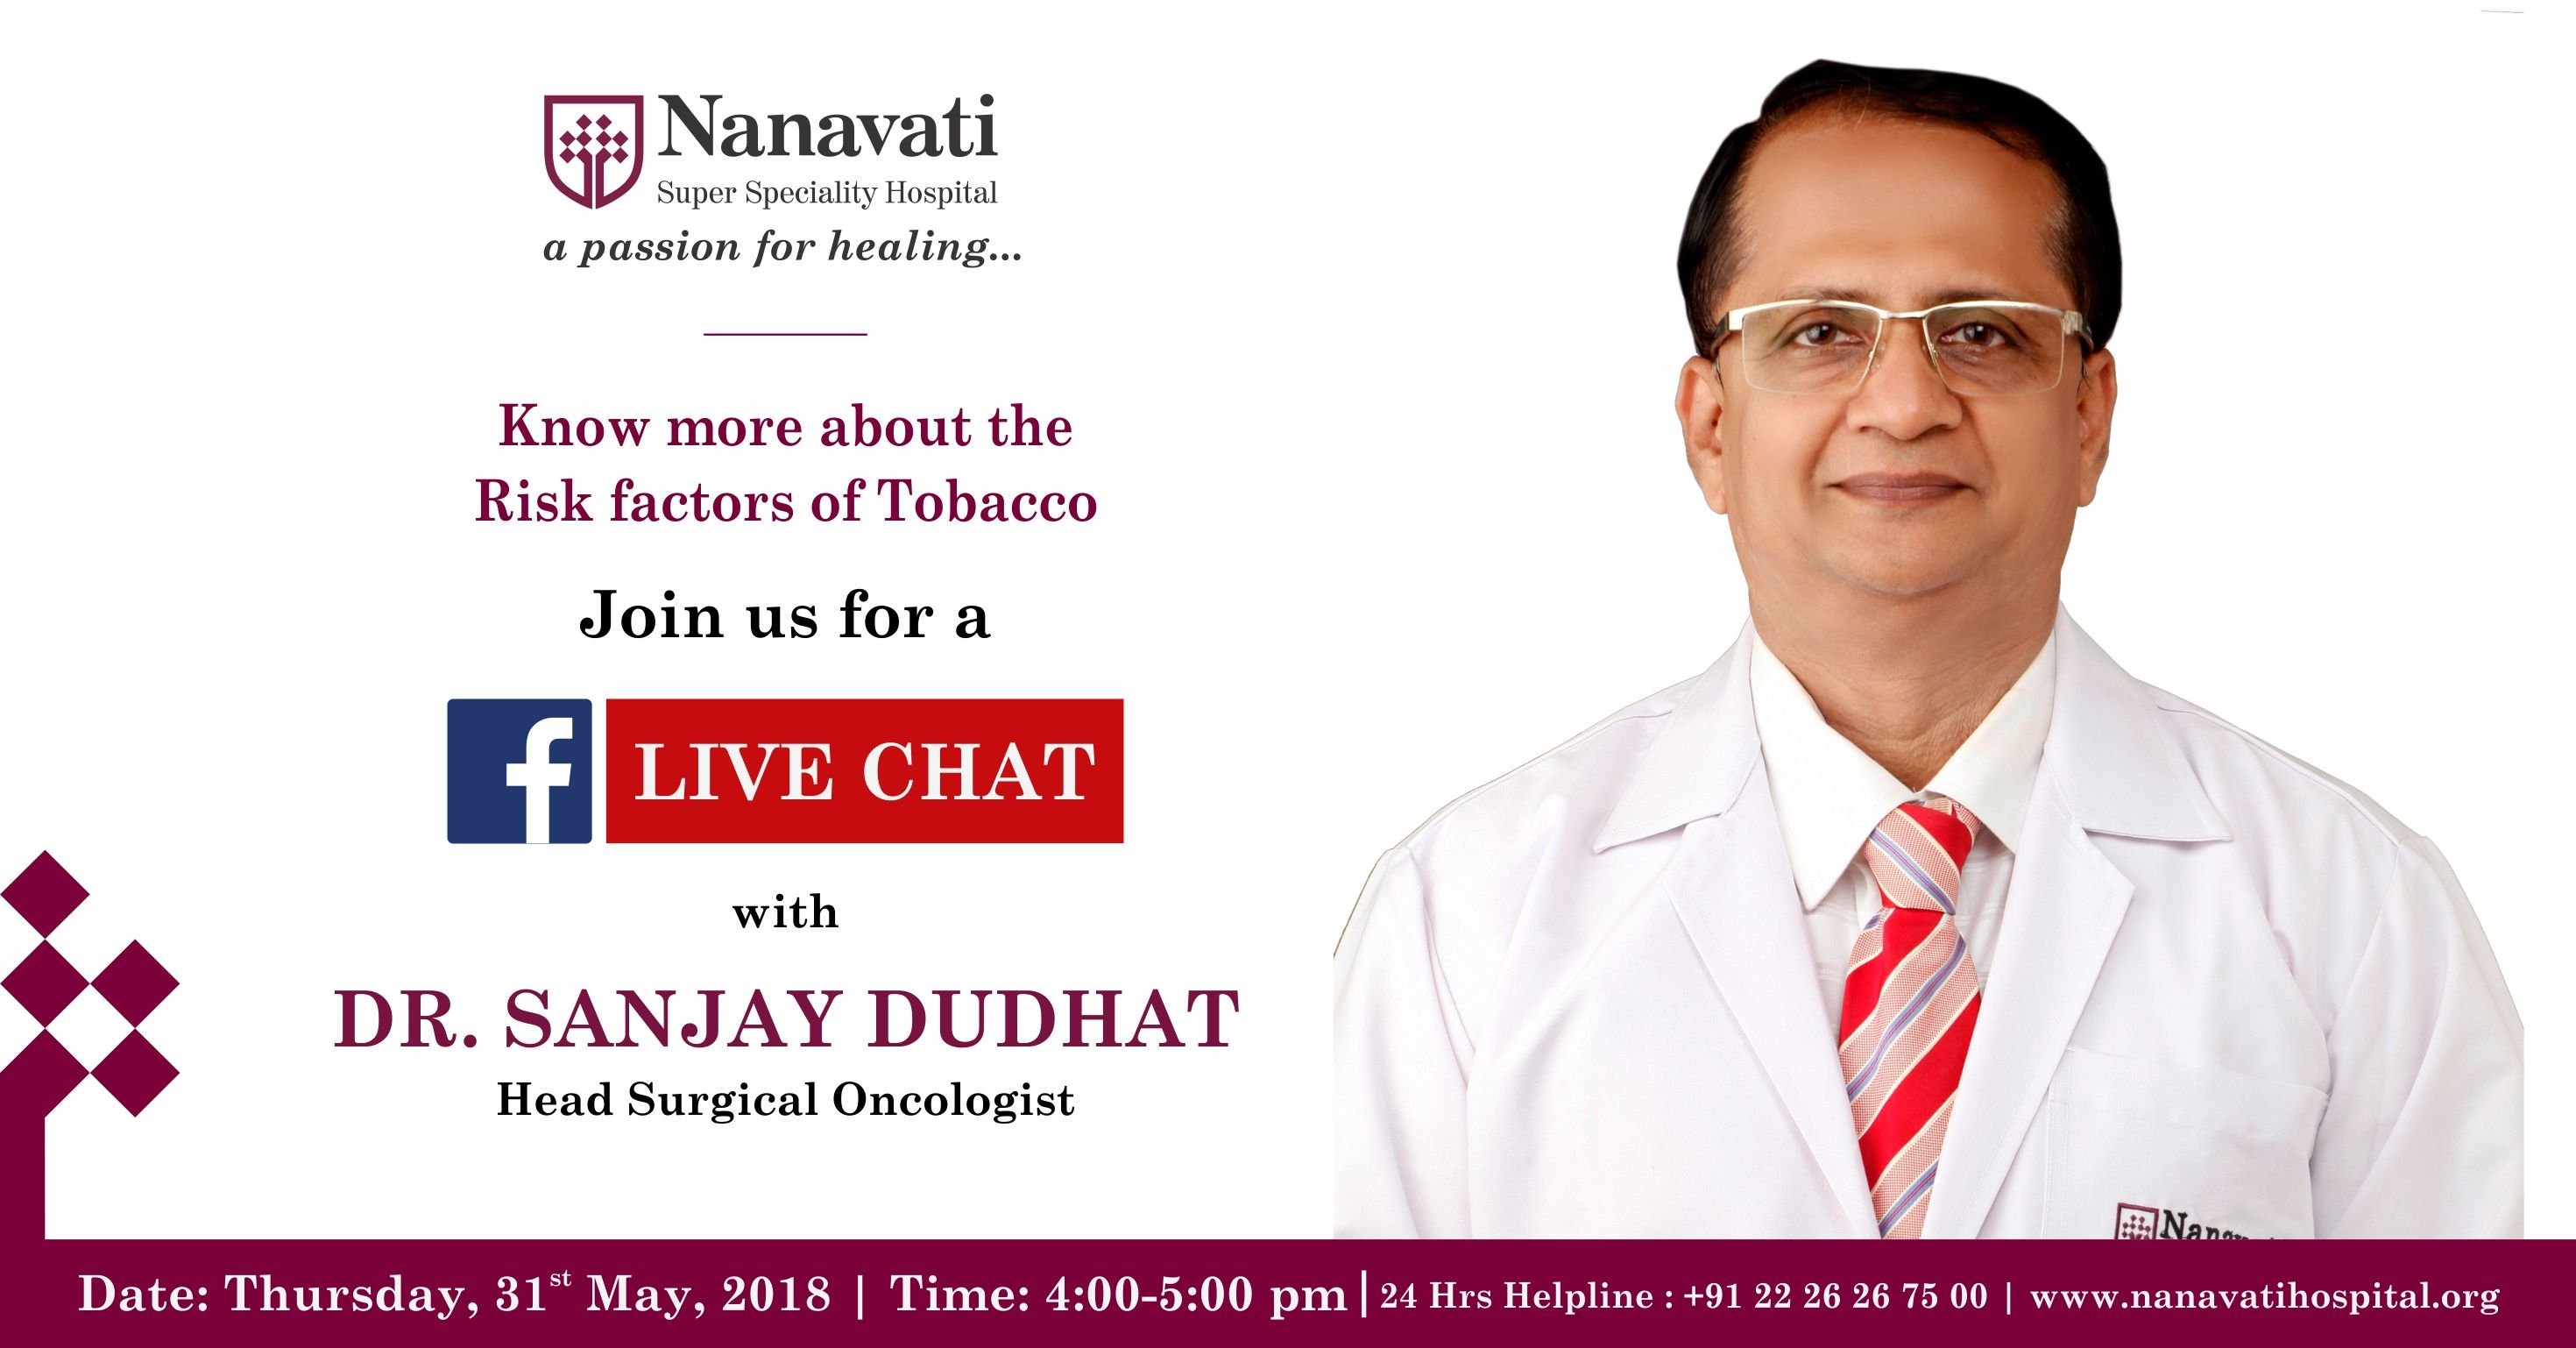 Stay tuned for our facebook live chat with dr sanjay dudhat on st